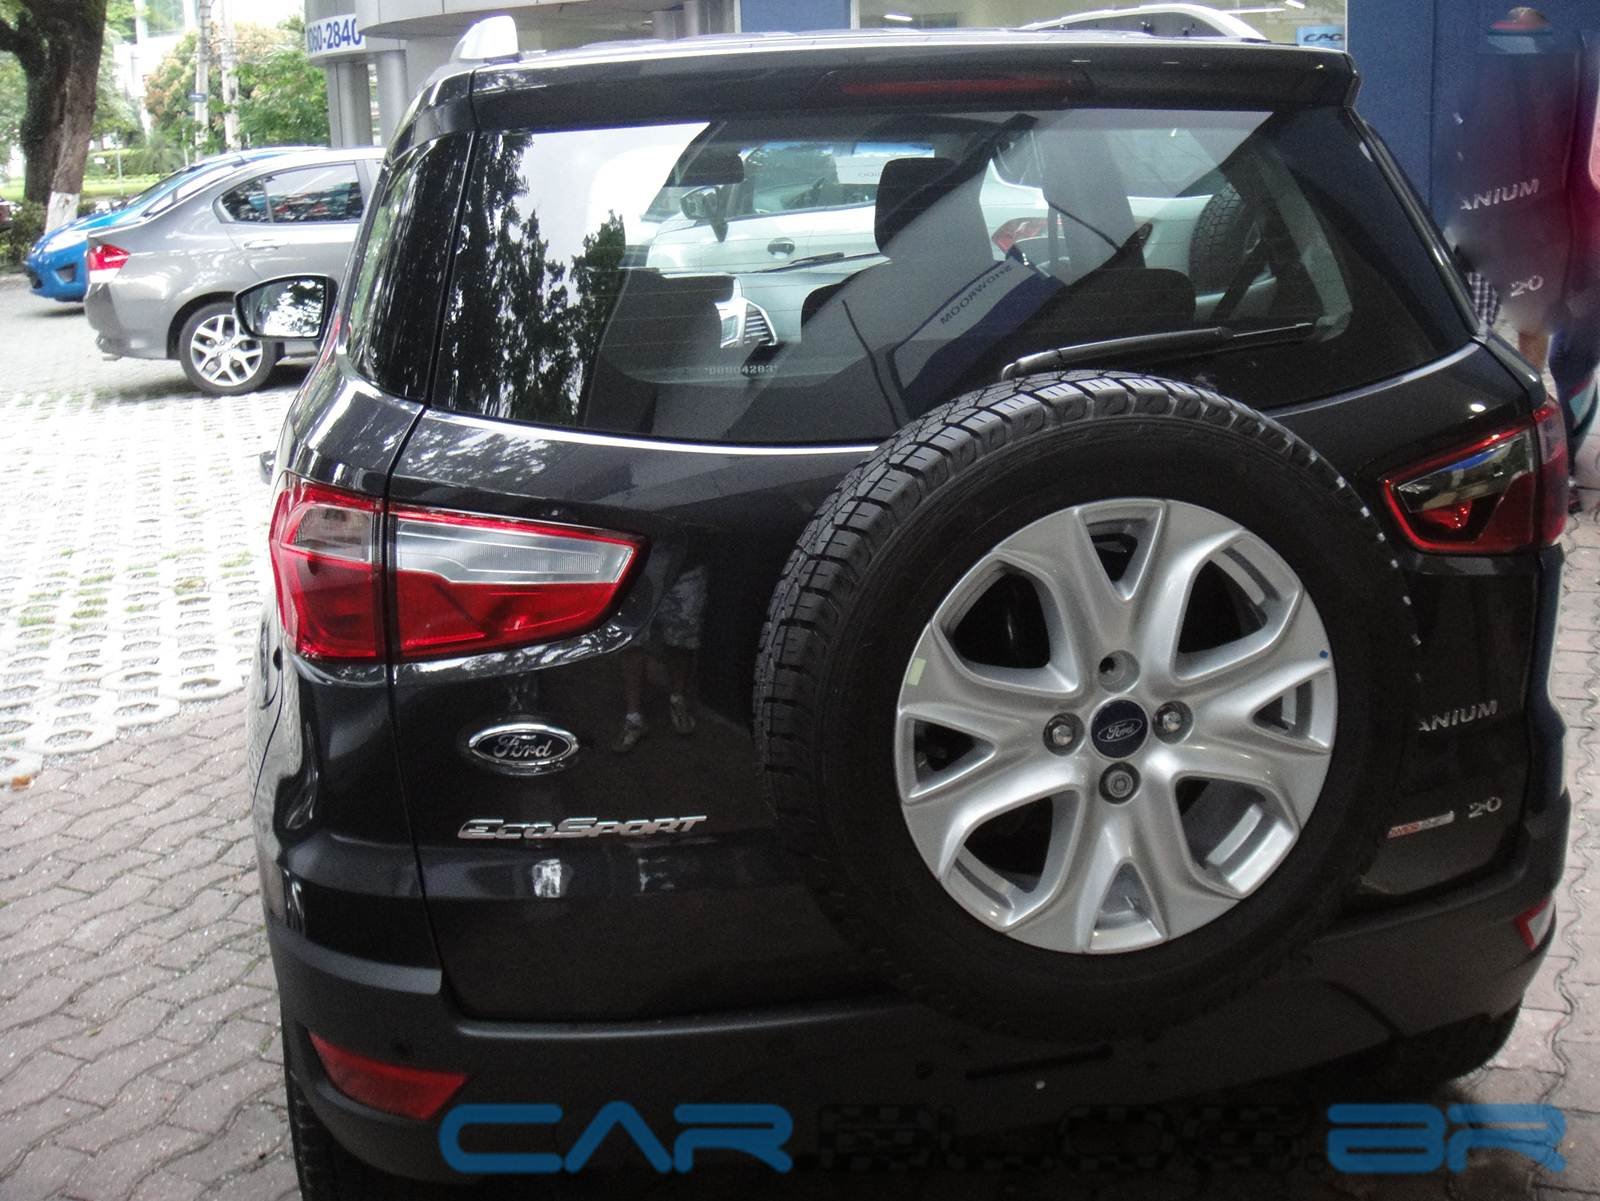 ford suv, ford flex, ford galaxy, ford mustang, ford fusion, ford mondeo, ford c-max, ford endeavour, ford econoline, ford explorer, ford edge, ford everest, ford ka, ford fiesta, ford excursion, ford figo, ford ranger, ford gt, ford focus, ford escape, on ford ecosport quatro rodas